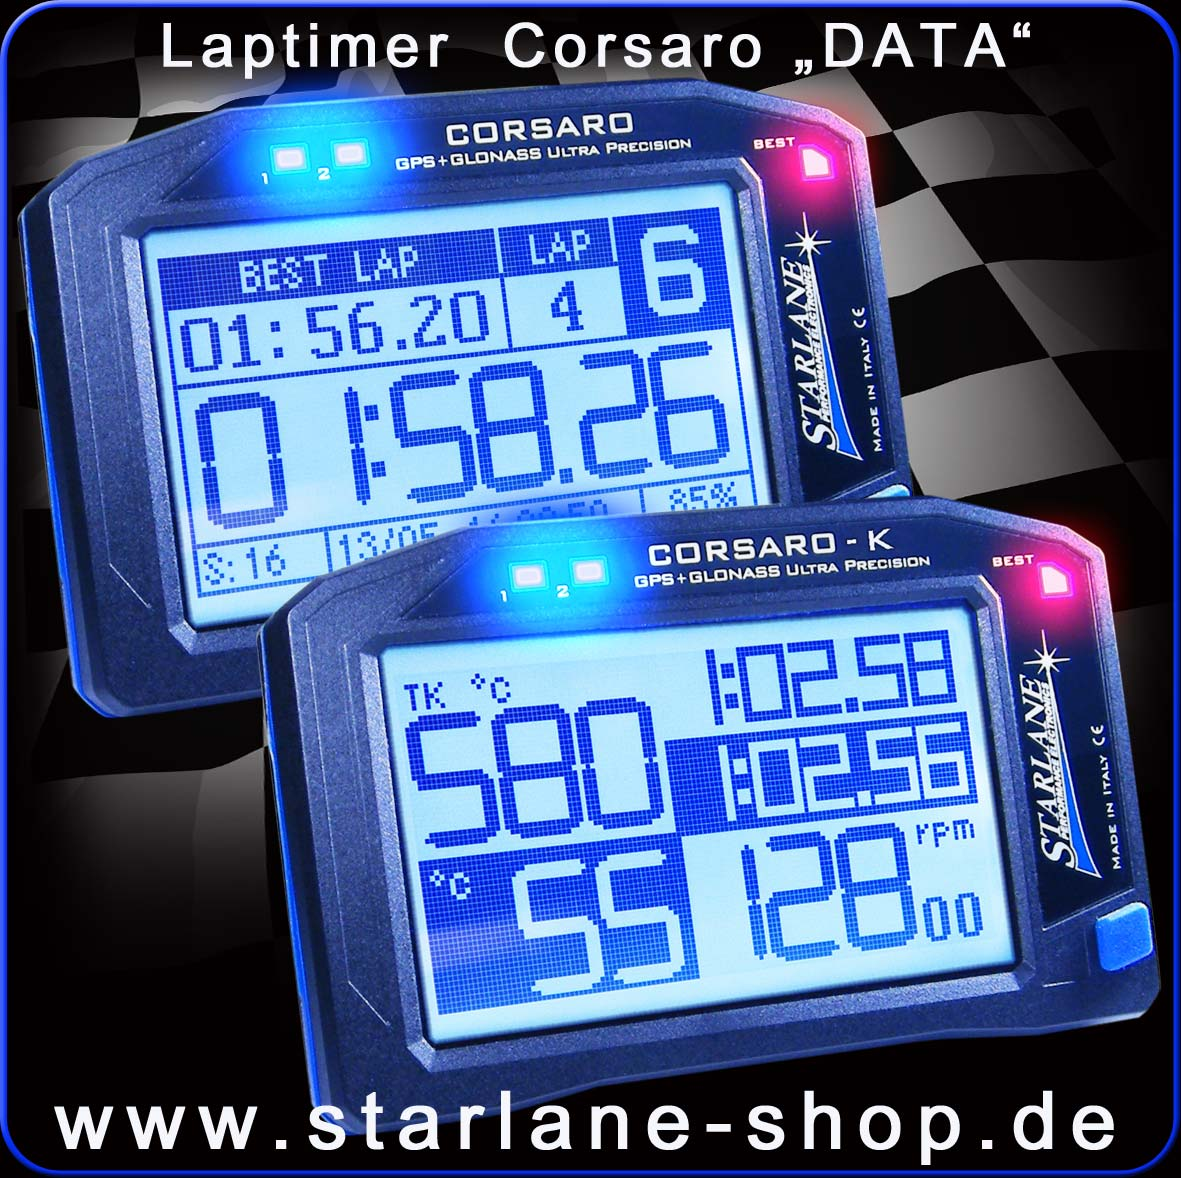 laptimer corsaro data für datarecording